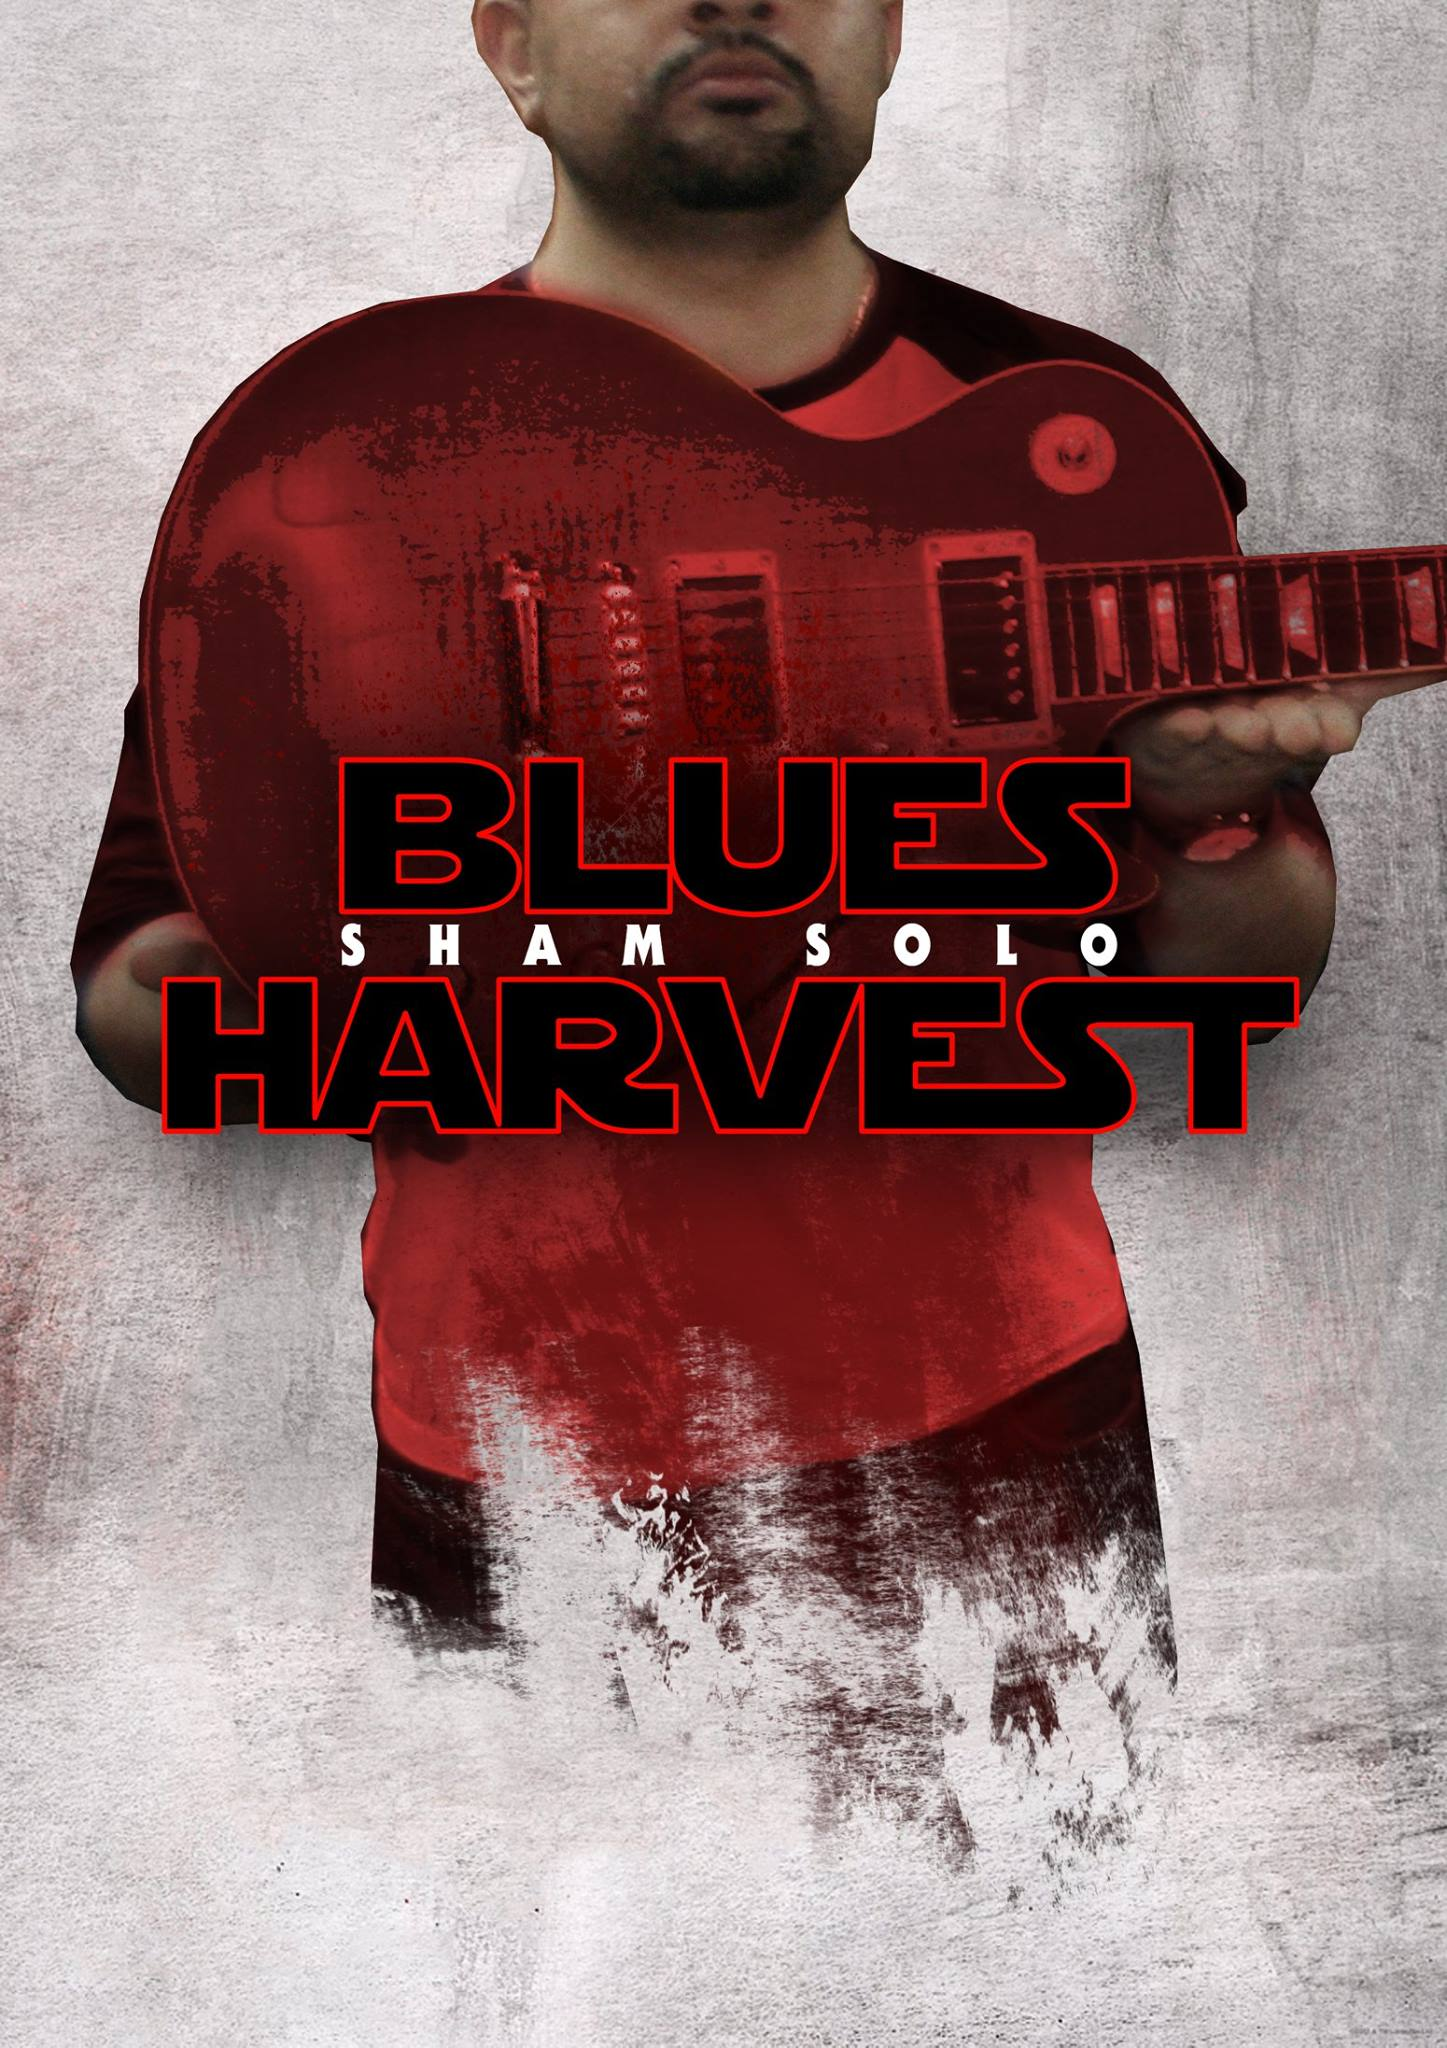 sham-solo-blues-harvest-the-last-jedi-character-posters